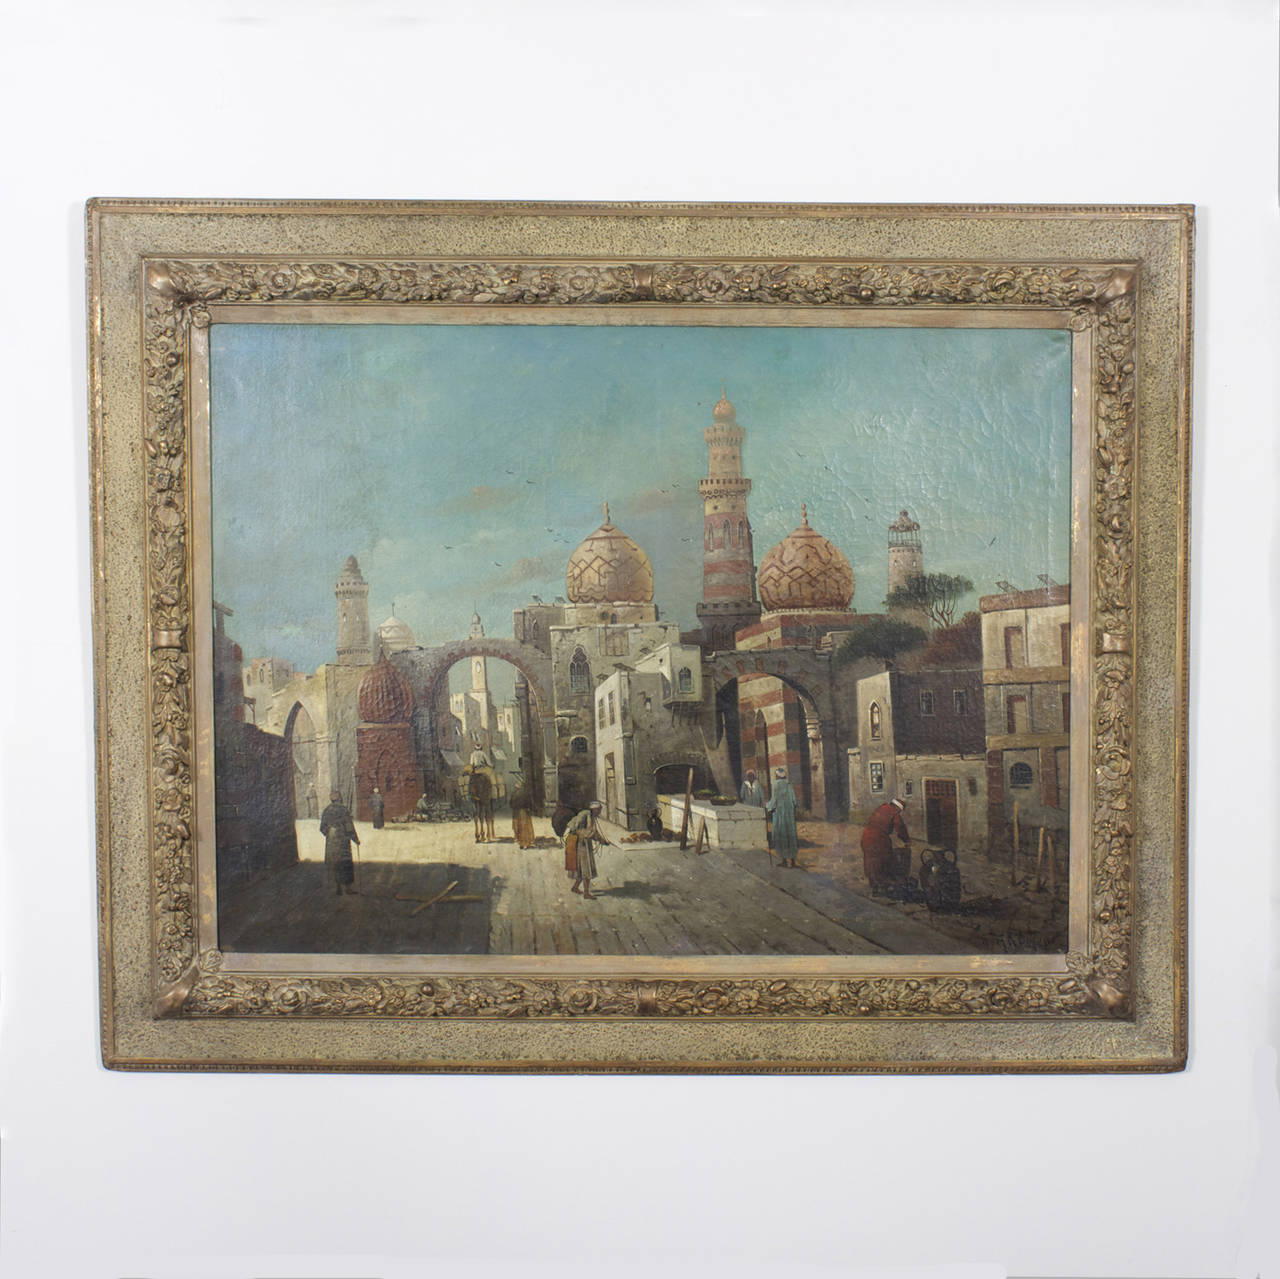 German Orientalist oil on canvas painting of a street scene. Long shadows suggesting start of the day, complete with merchants, travelers, arches, onion domes and cupolas all set against a brilliant blue sky. Signed Anton Hubner in the lower right.